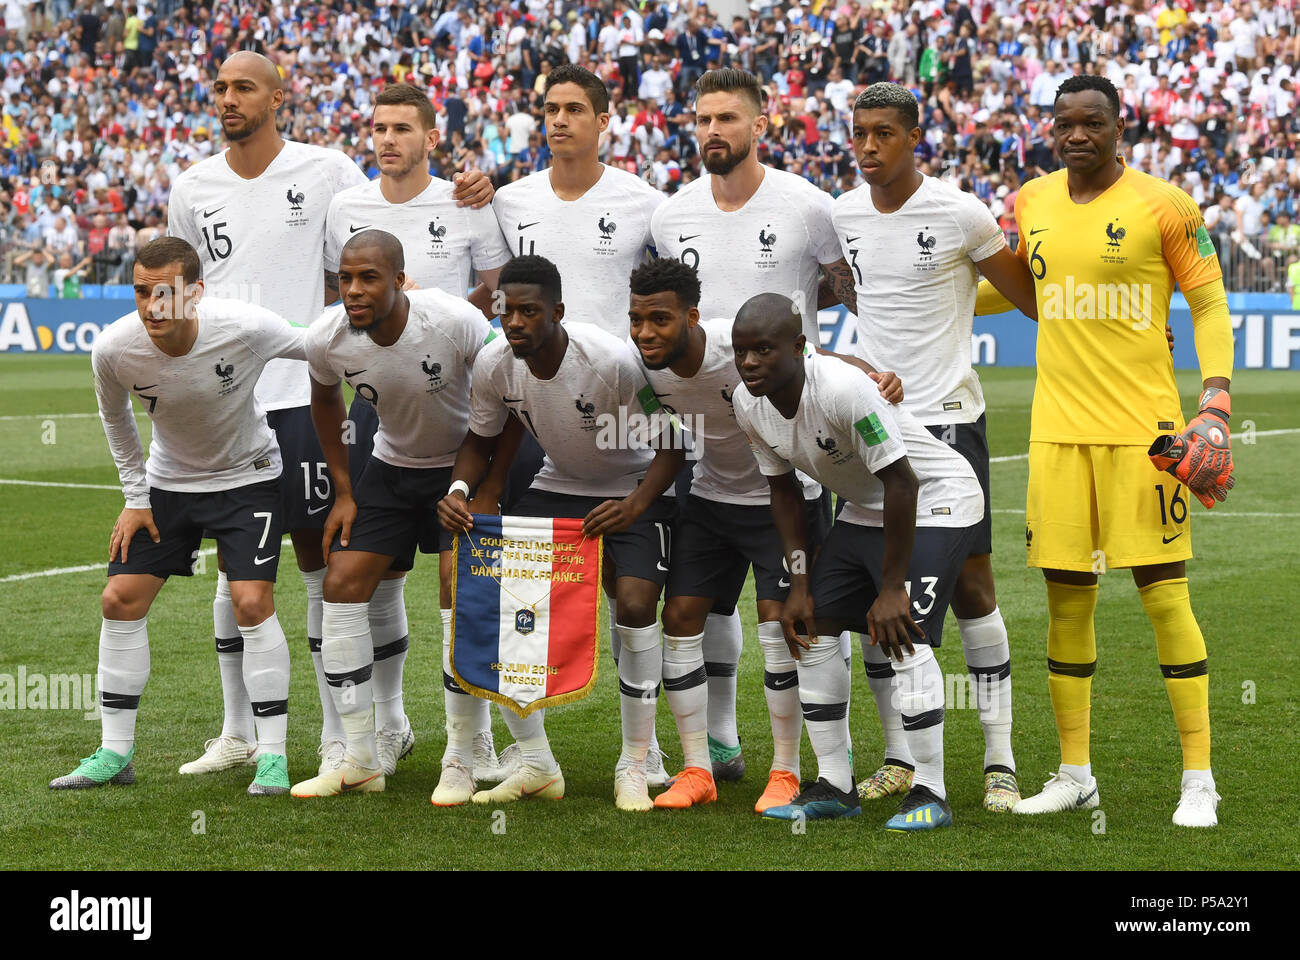 At the world cup this summer. Moscow Russia 26th June 2018 Soccer Fifa World Cup 2018 Denmark Vs France Group Stages Group C 3rd Matchday Luzhniki Stadium The French National Team Poses For A Team Photo Credit Federico